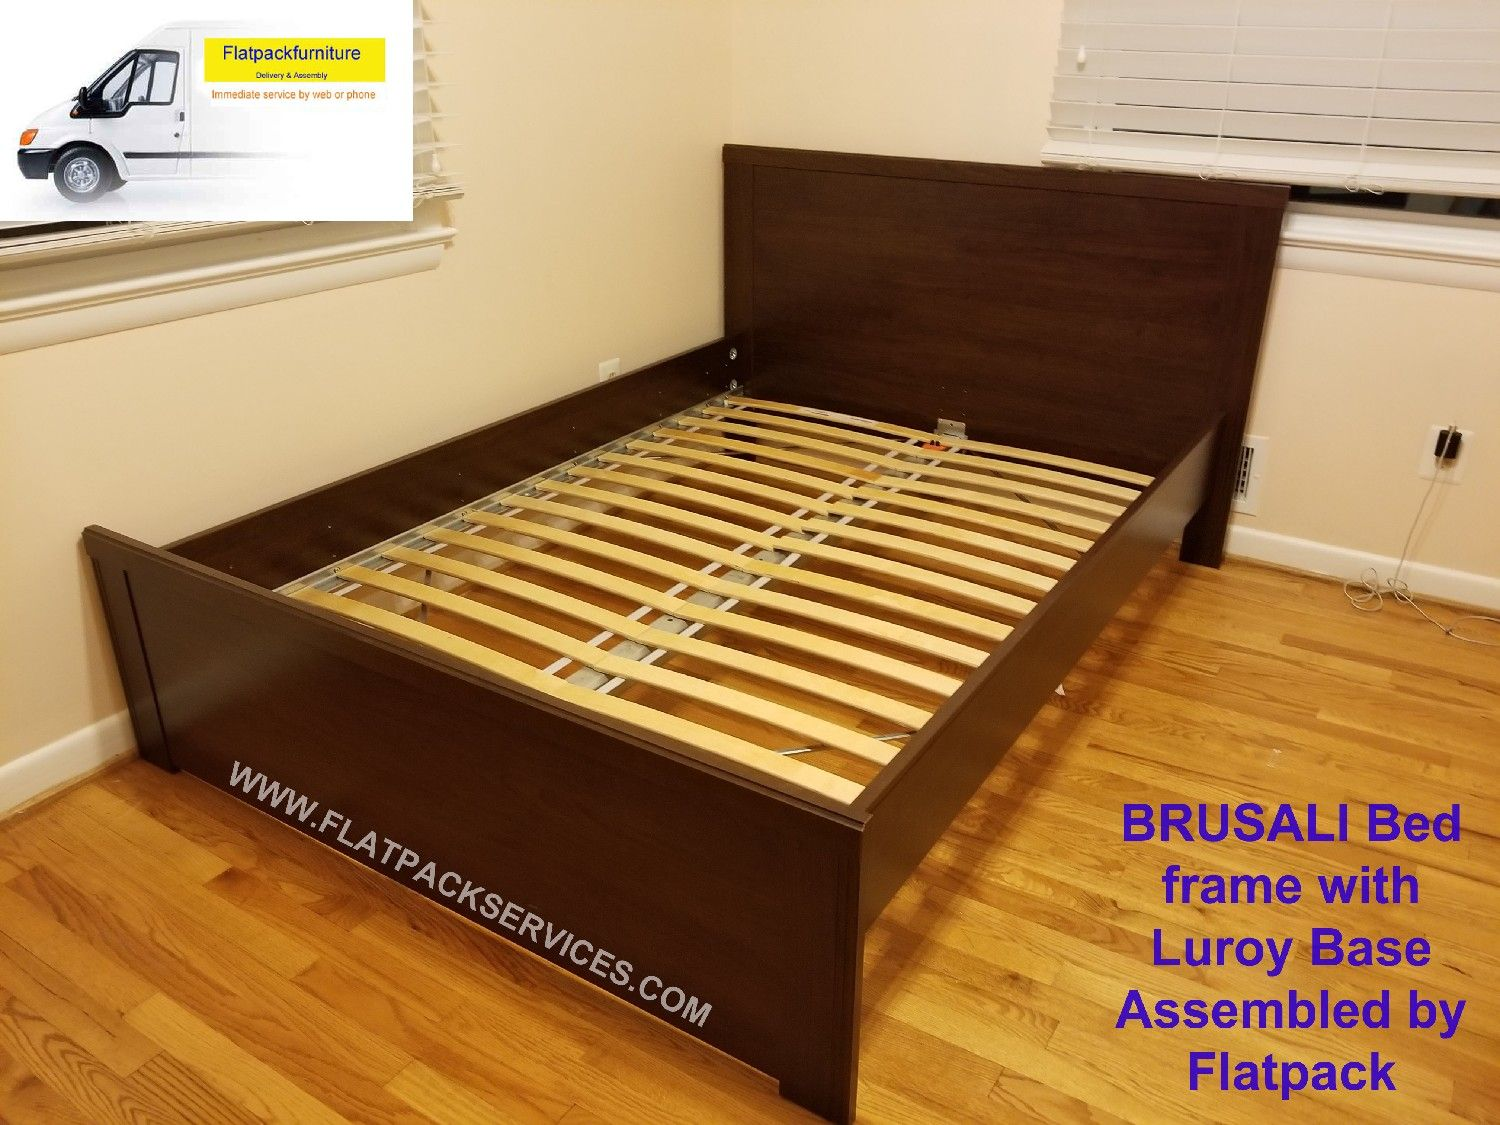 BRUSALI Bed Frame With 2 Storage Boxes Article Number: 092.226.95 IKEA  Assembly In